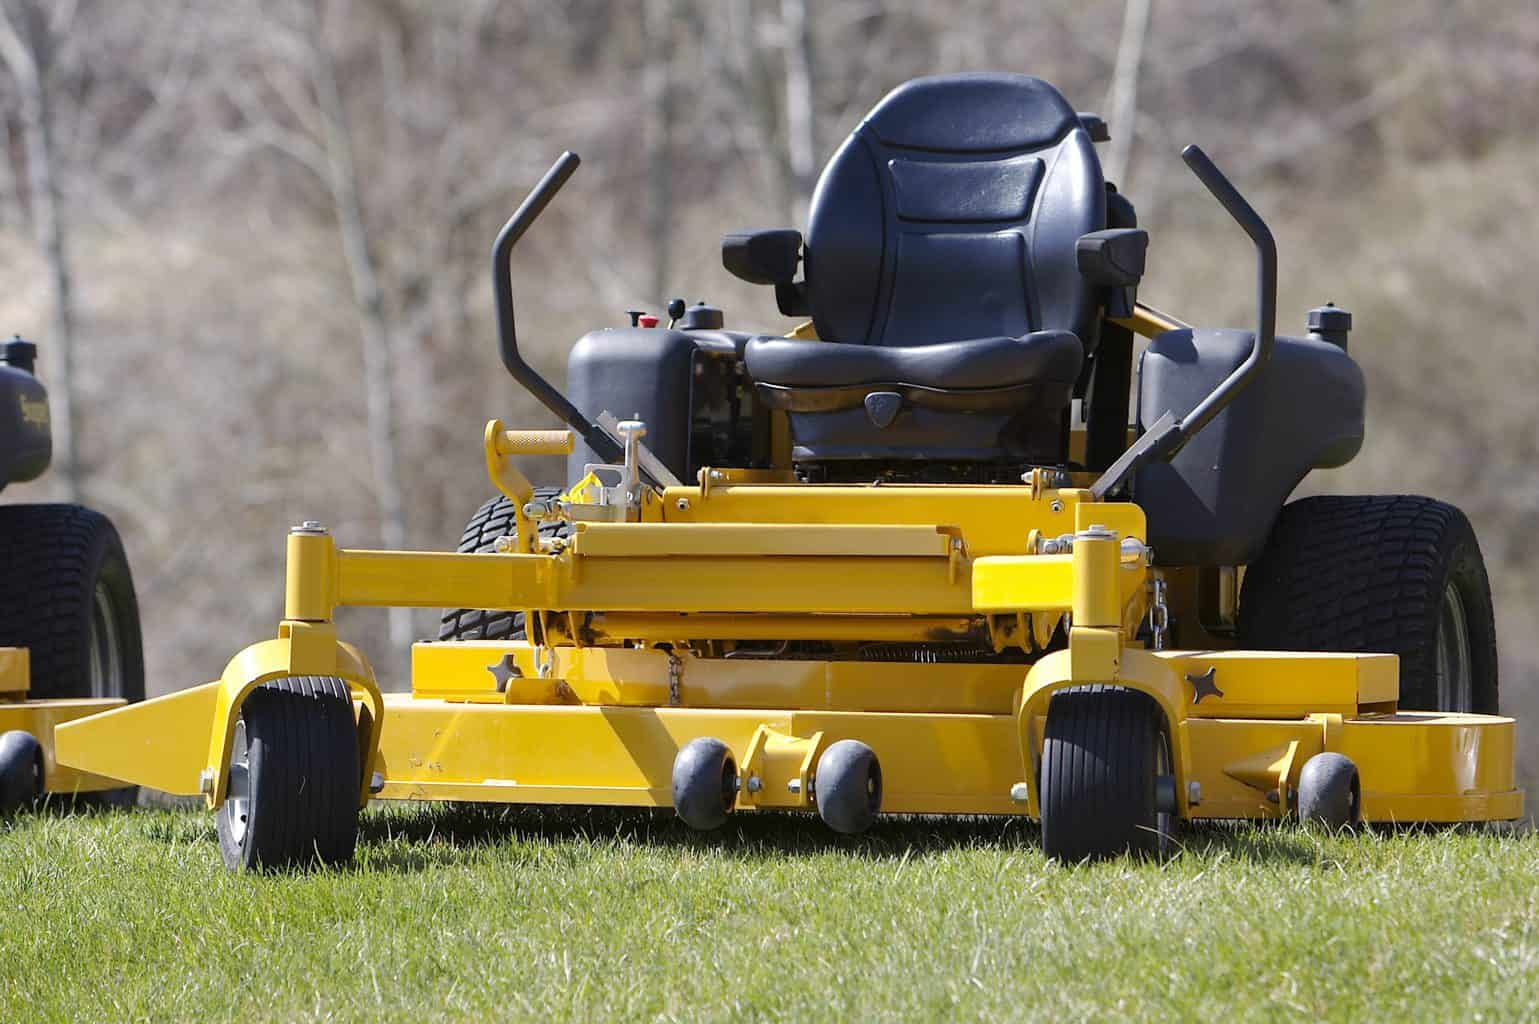 A zero turn mower parked outdoors